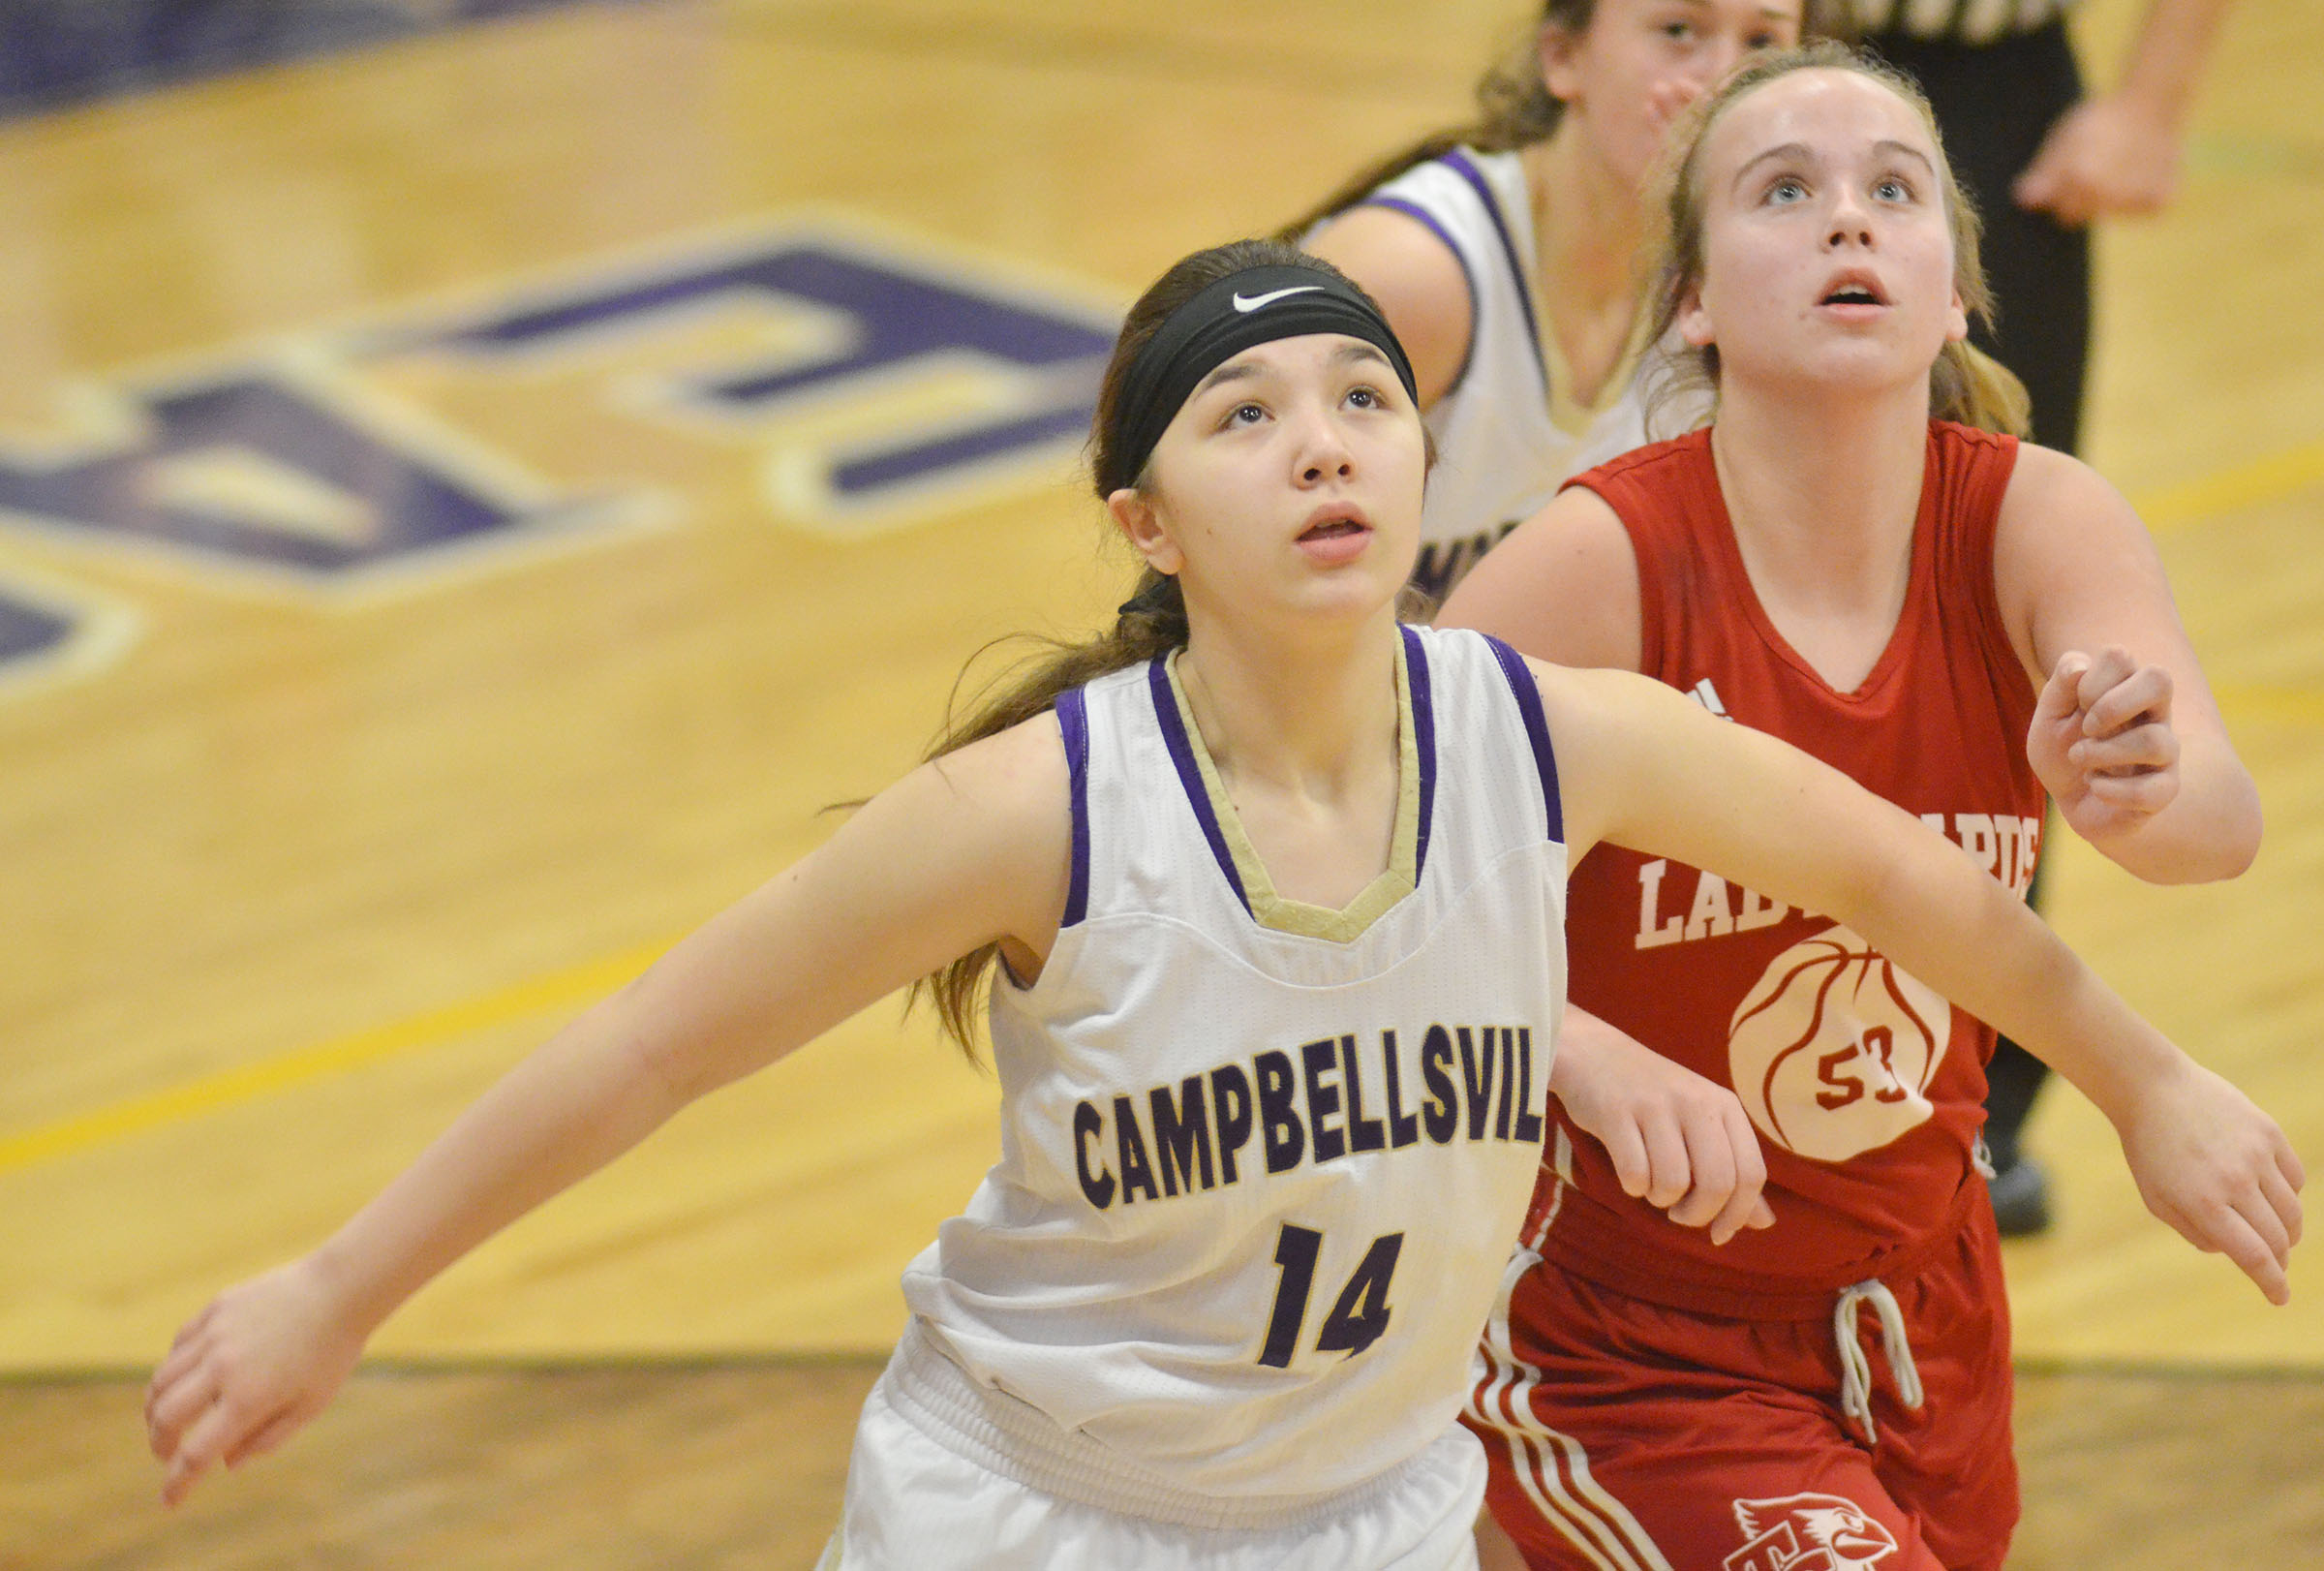 Campbellsville Middle School sixth-grader Olivia Fields plays defense.